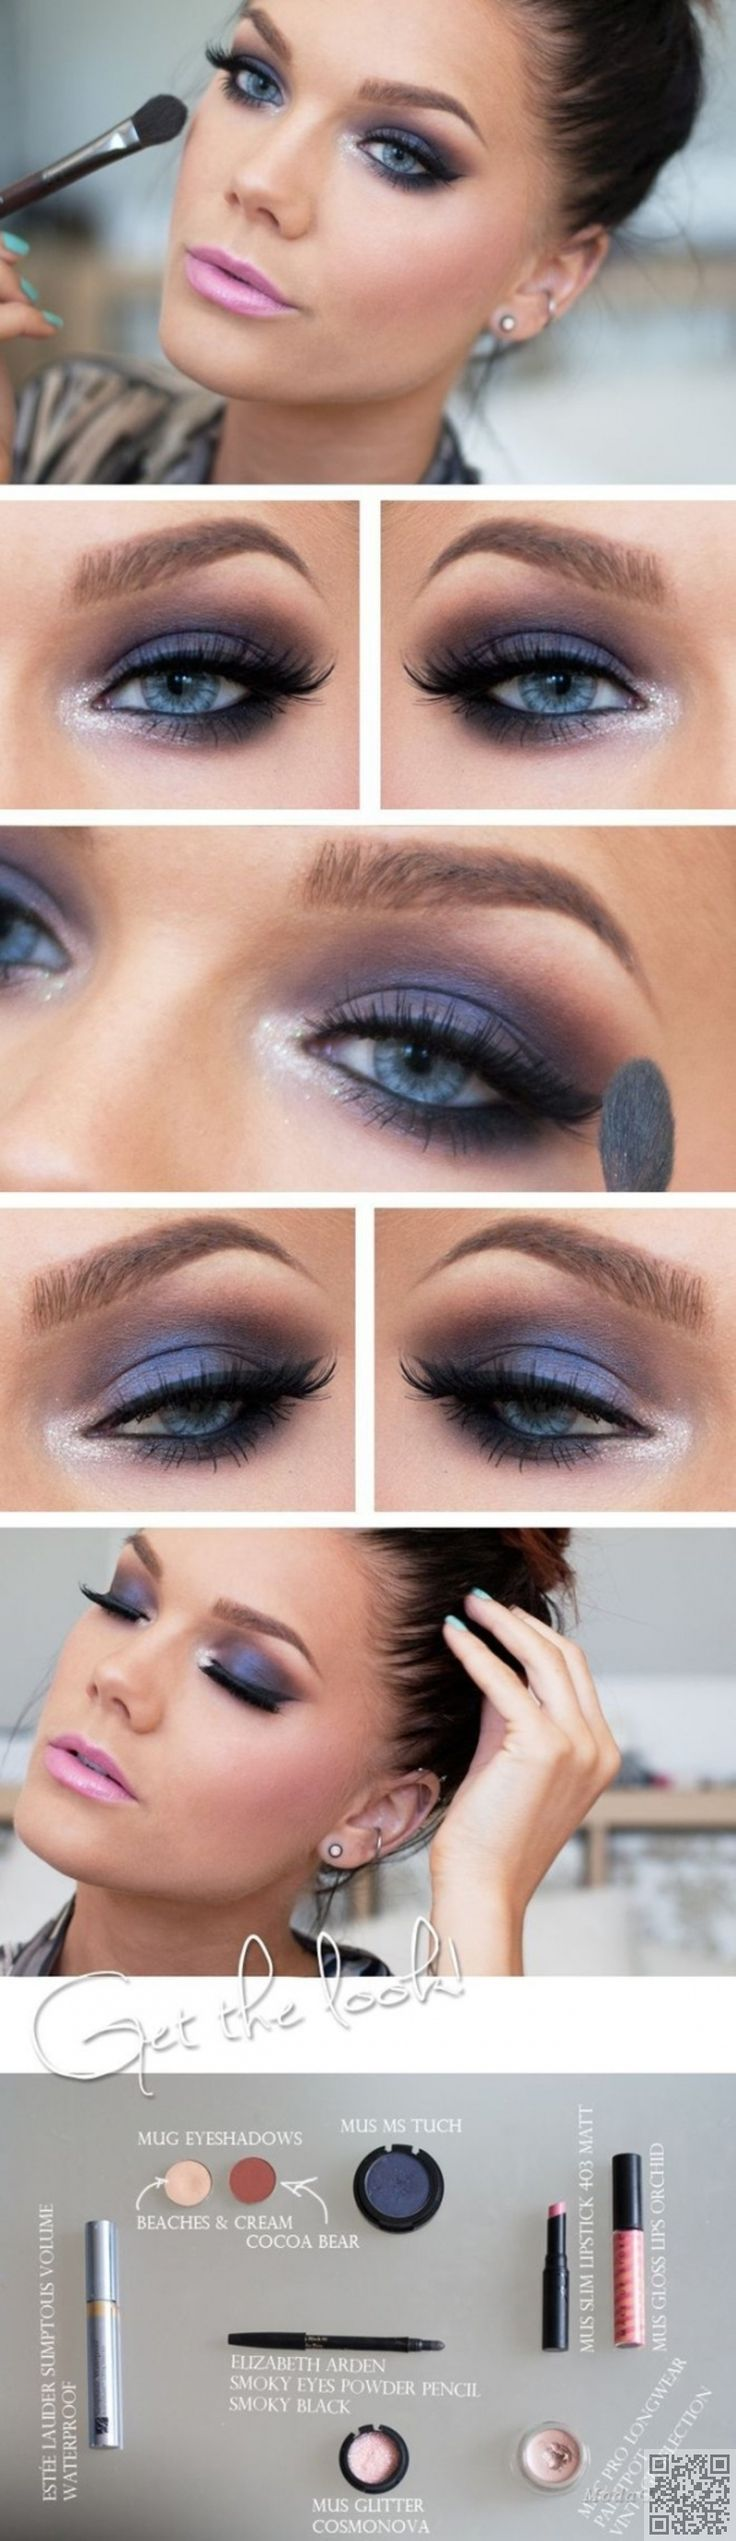 7 #Makeup #Tricks to Make Your Blue Eyes Pop ...